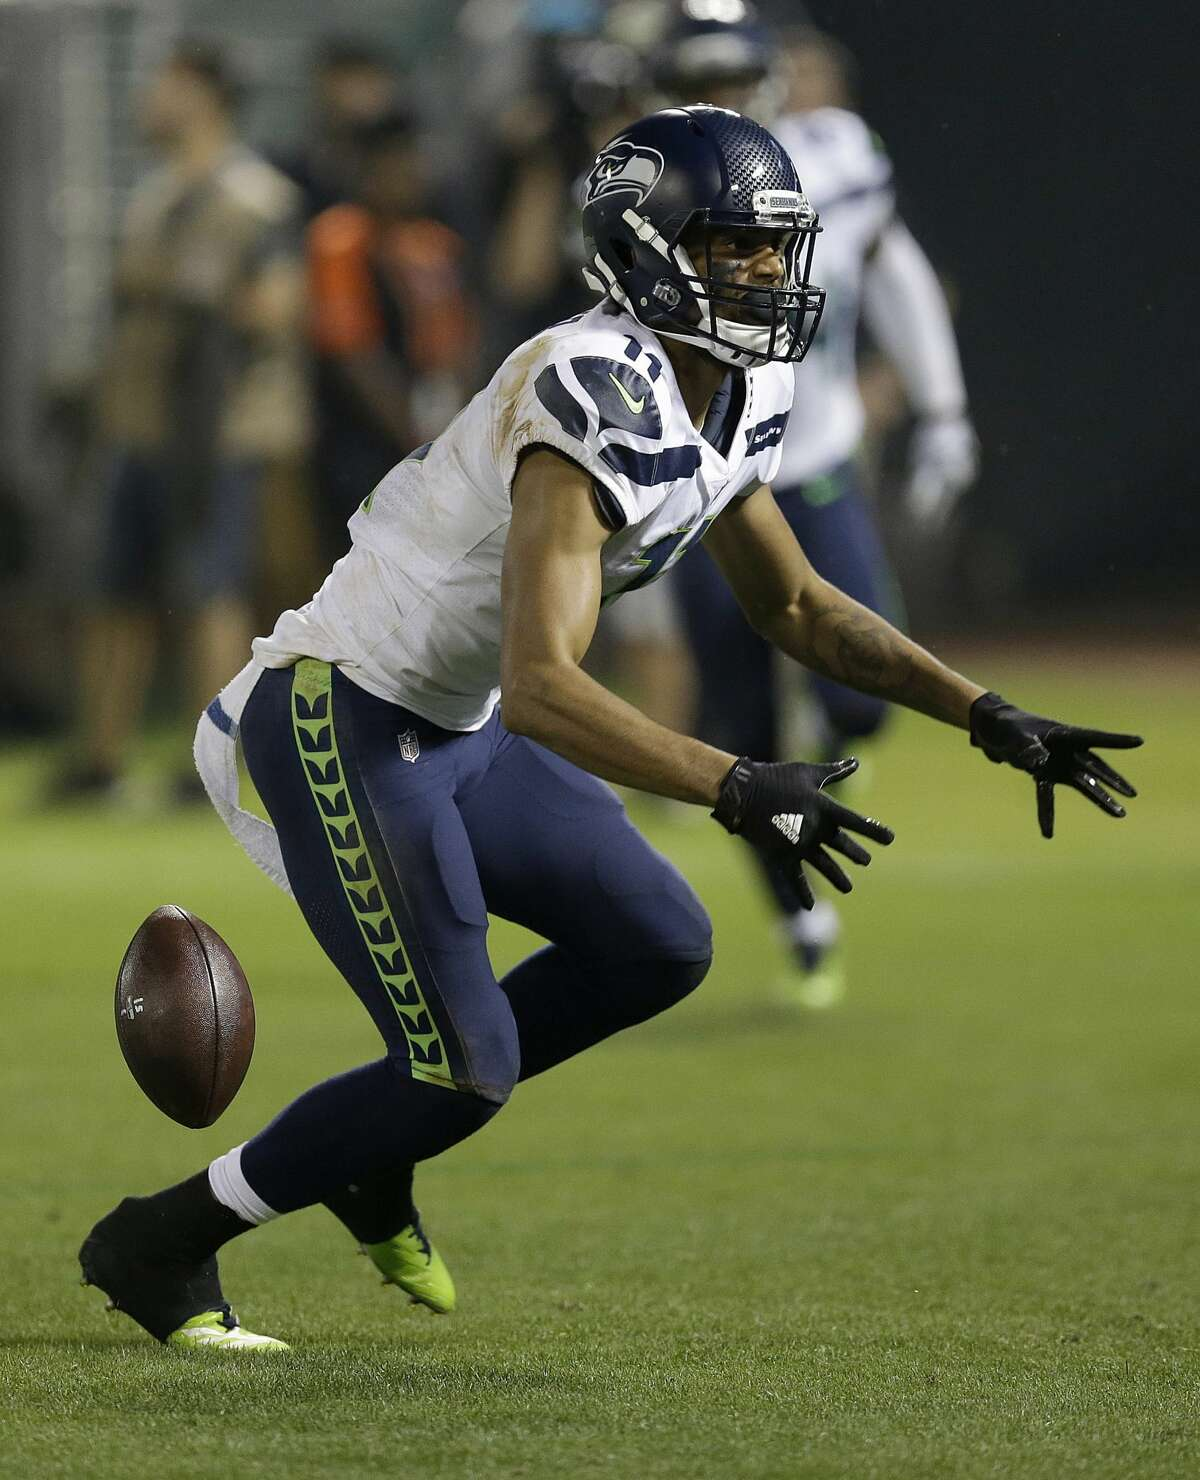 Seahawks wide receiver Kenny Lawler celebrates after scoring the game-winning touchdown.